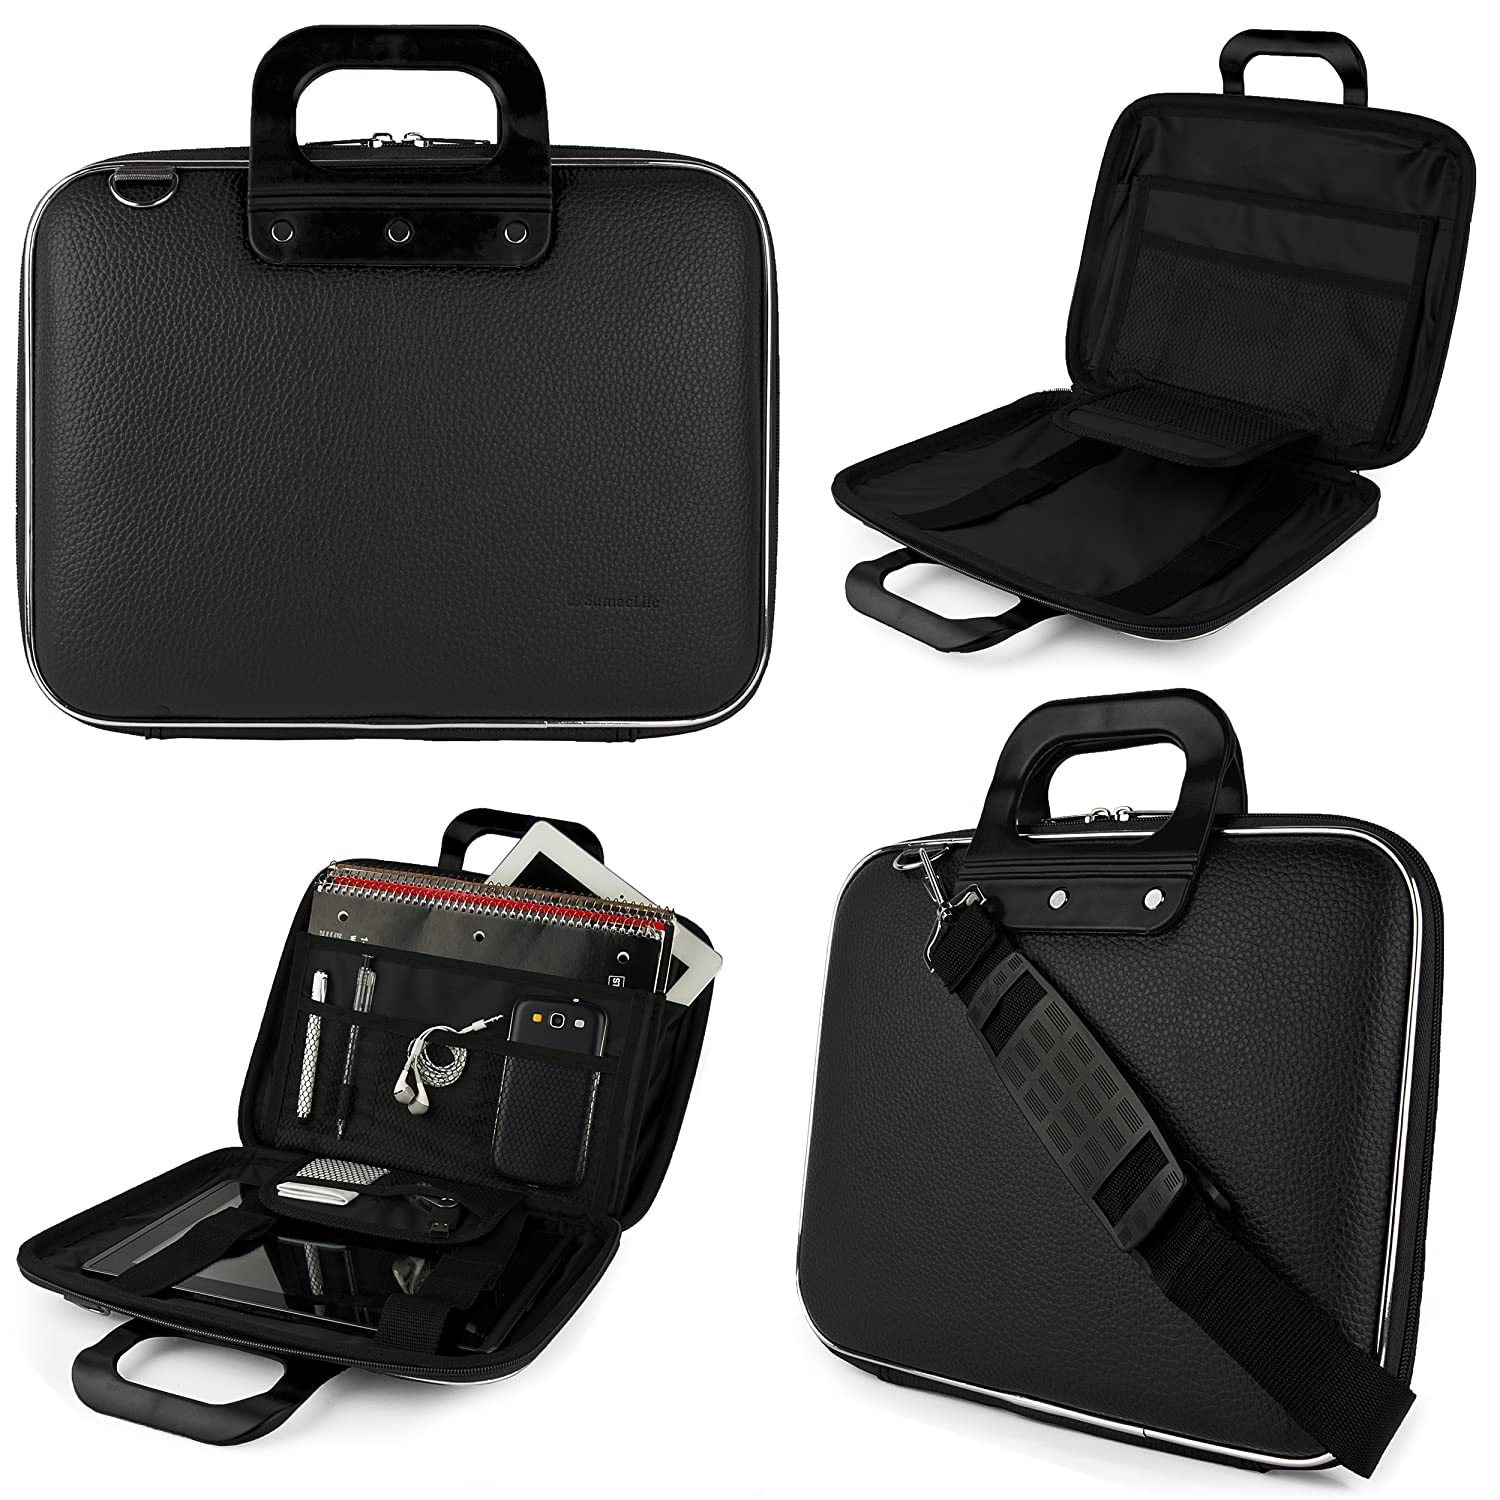 SumacLife Cady Acer Aspire Switch 11 & 11 V 11.6-inch Laptop and Tablet Briefcase Bag (Black) delicate